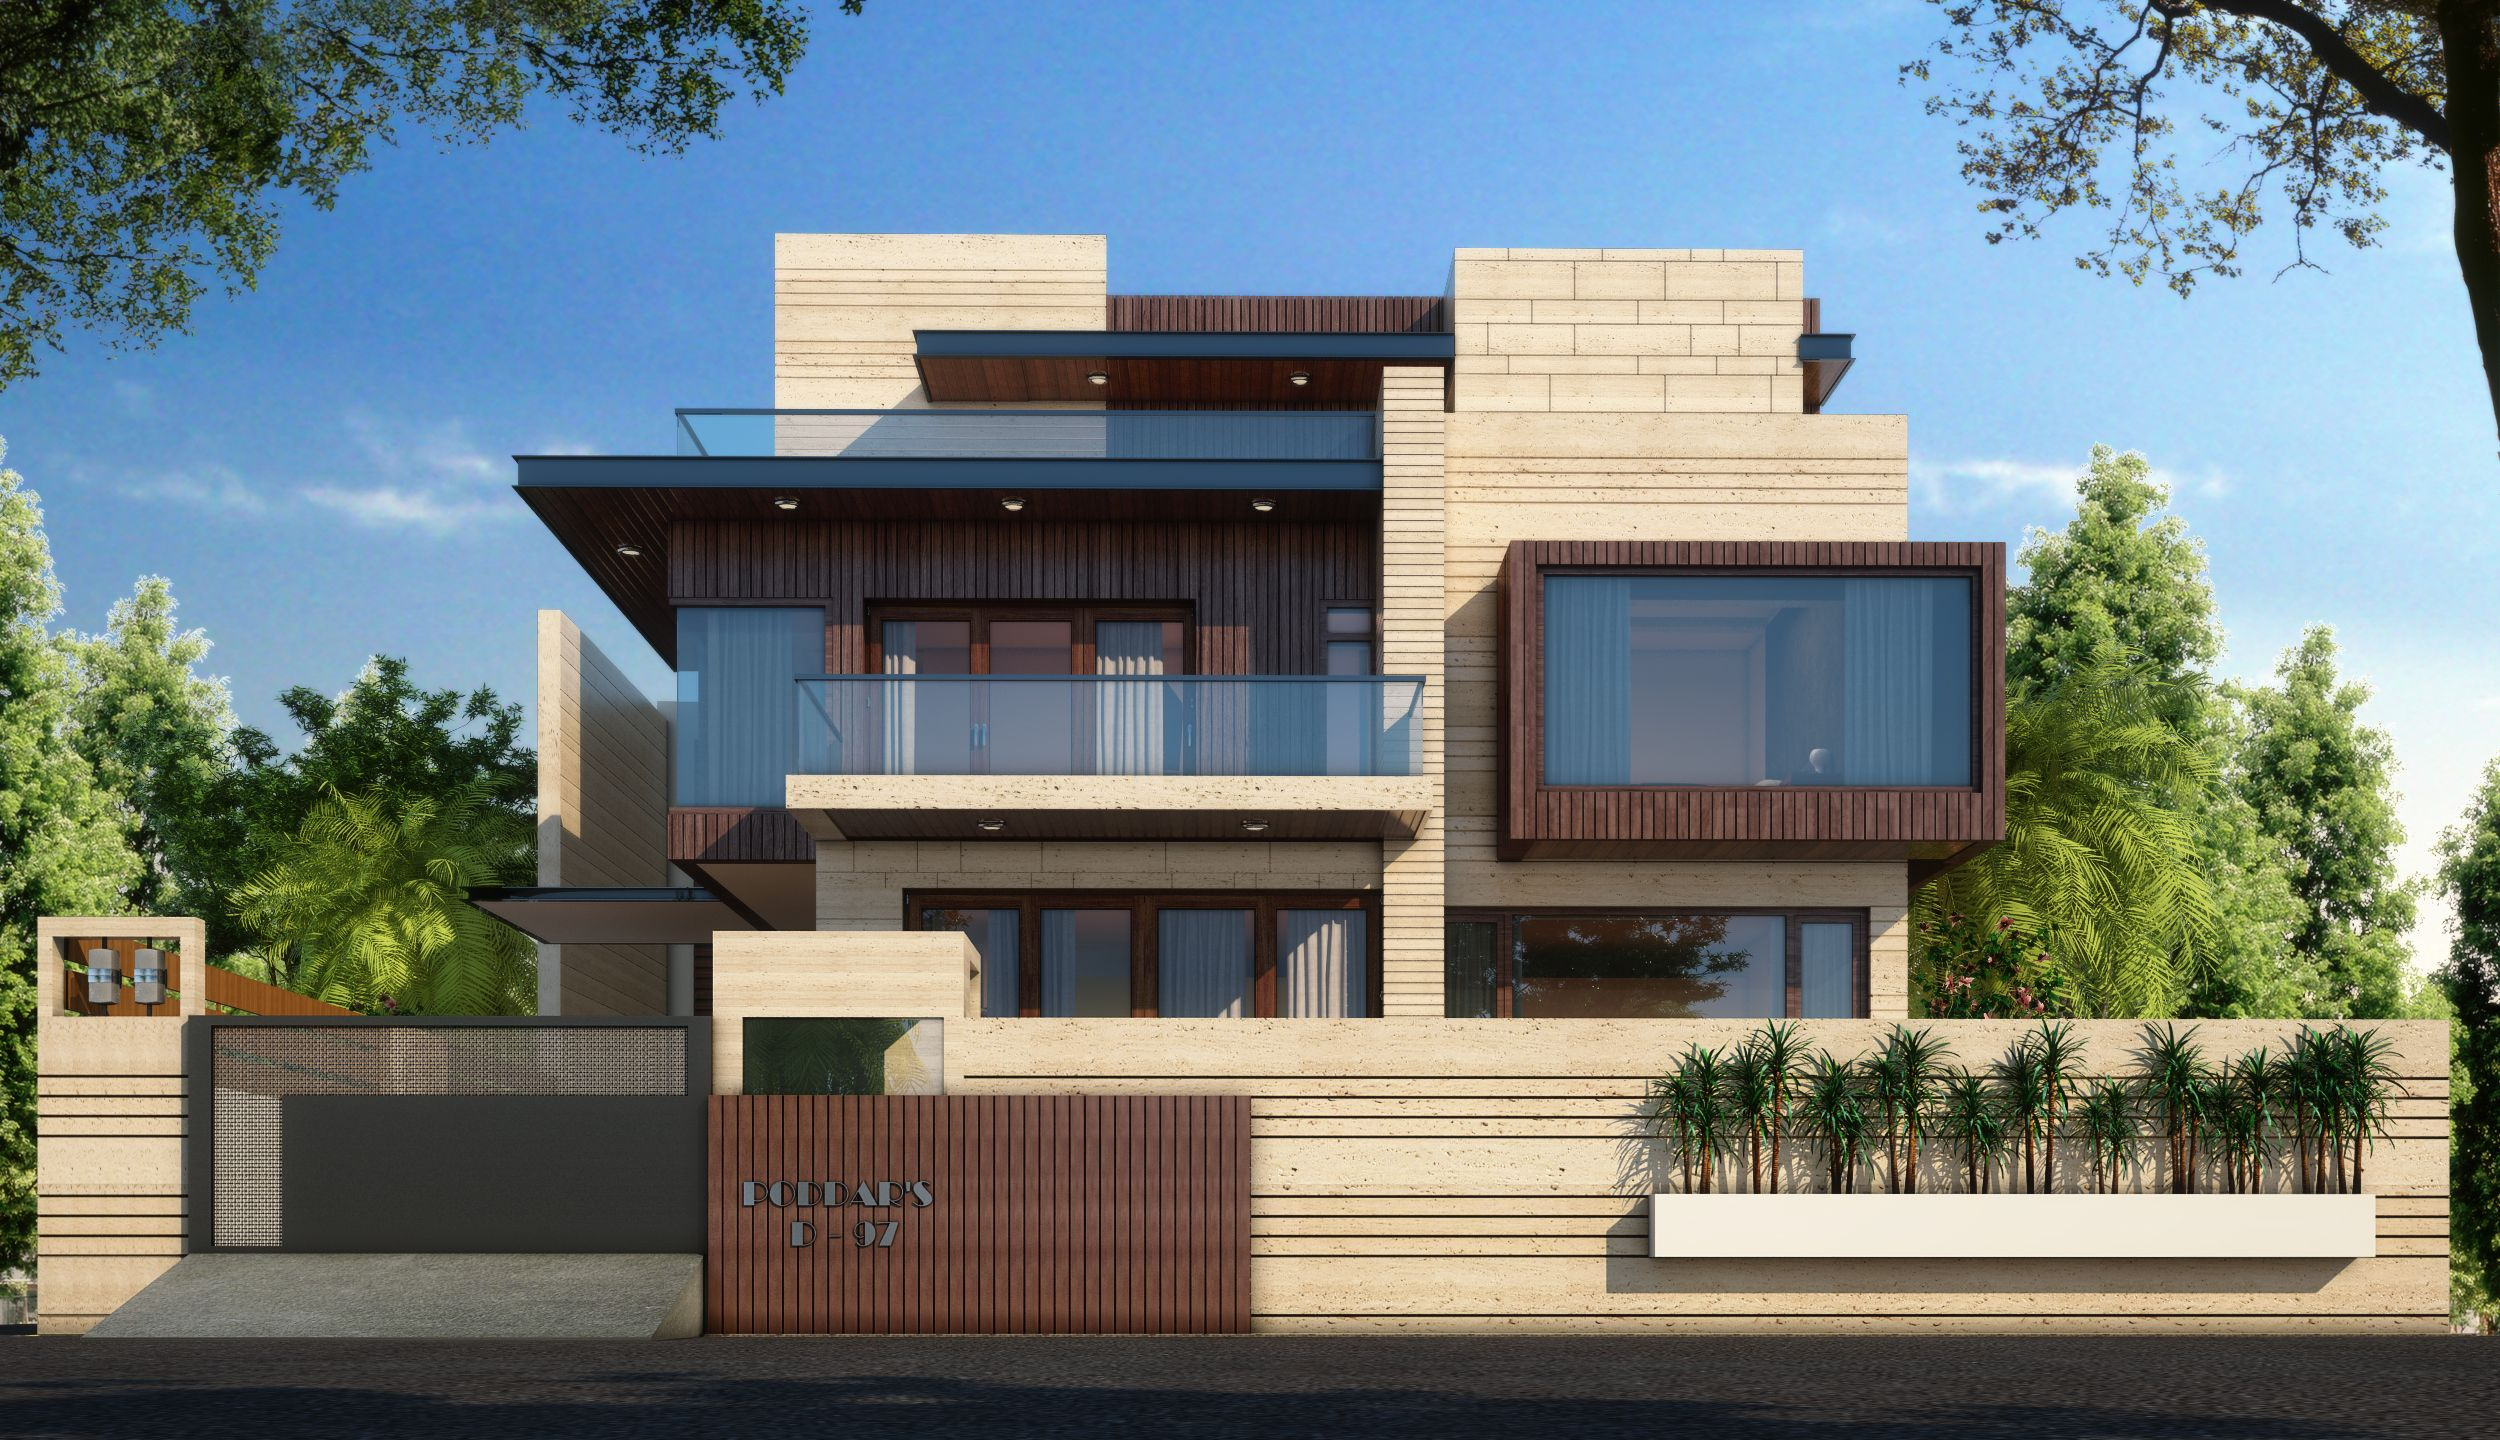 House Boundary Wall Design Compound Wall Design